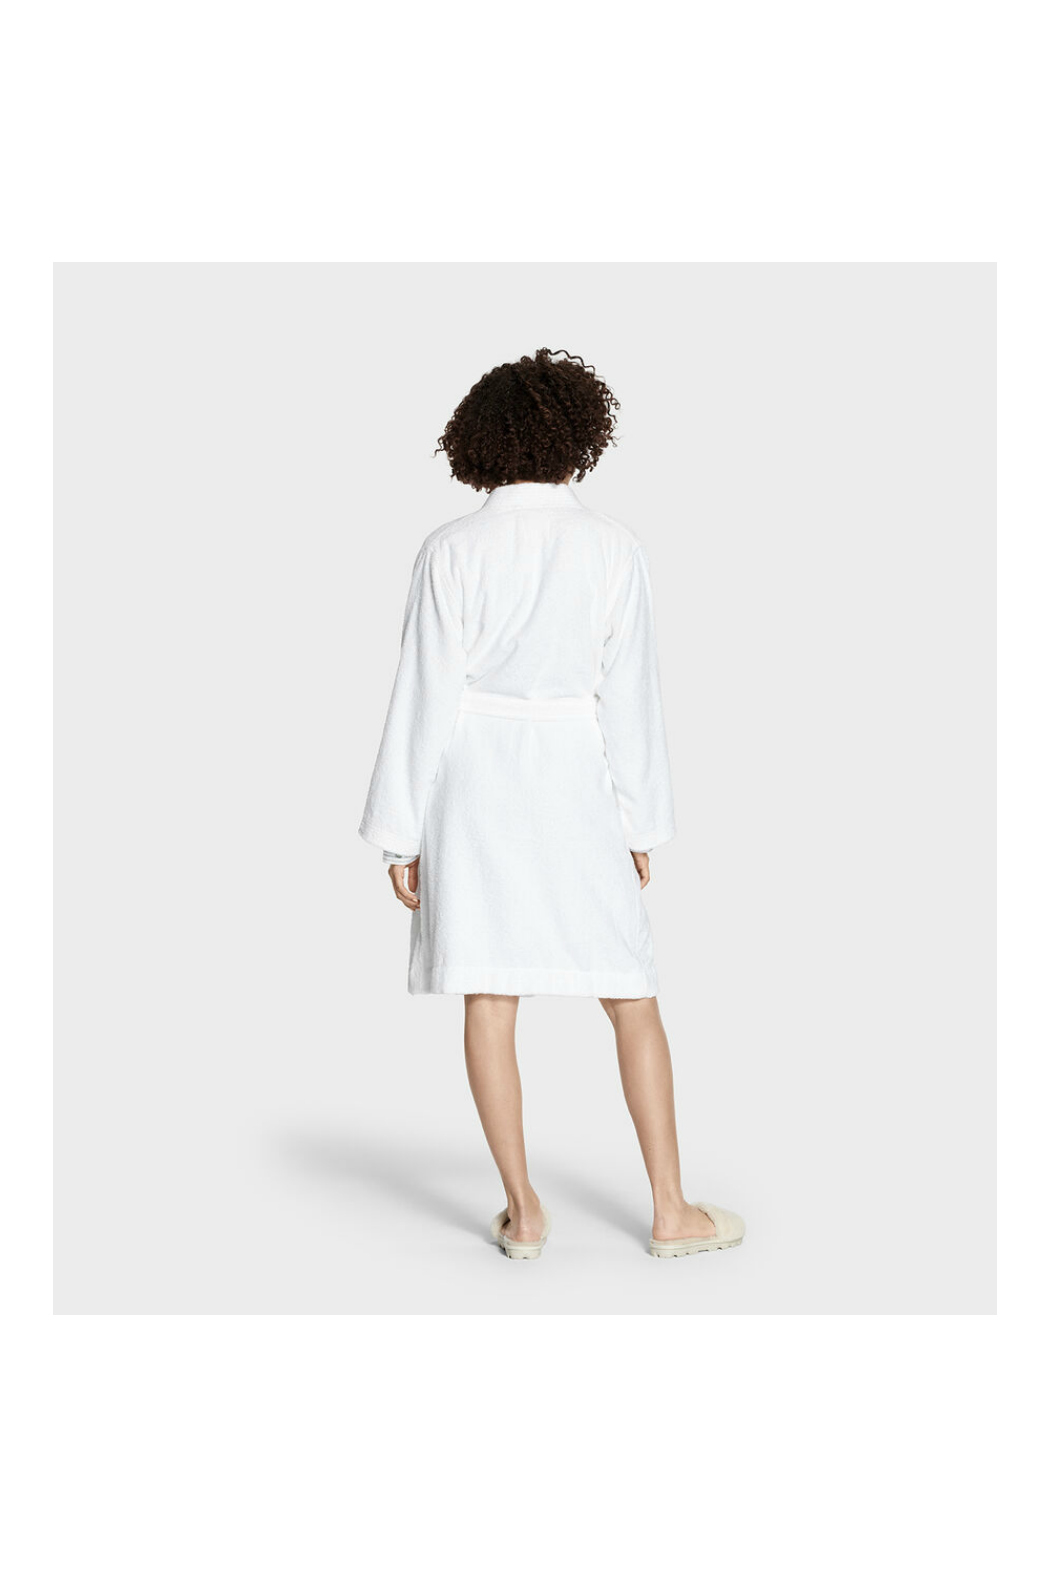 Ugg LORIE TERRY ROBE - Back Cropped Image